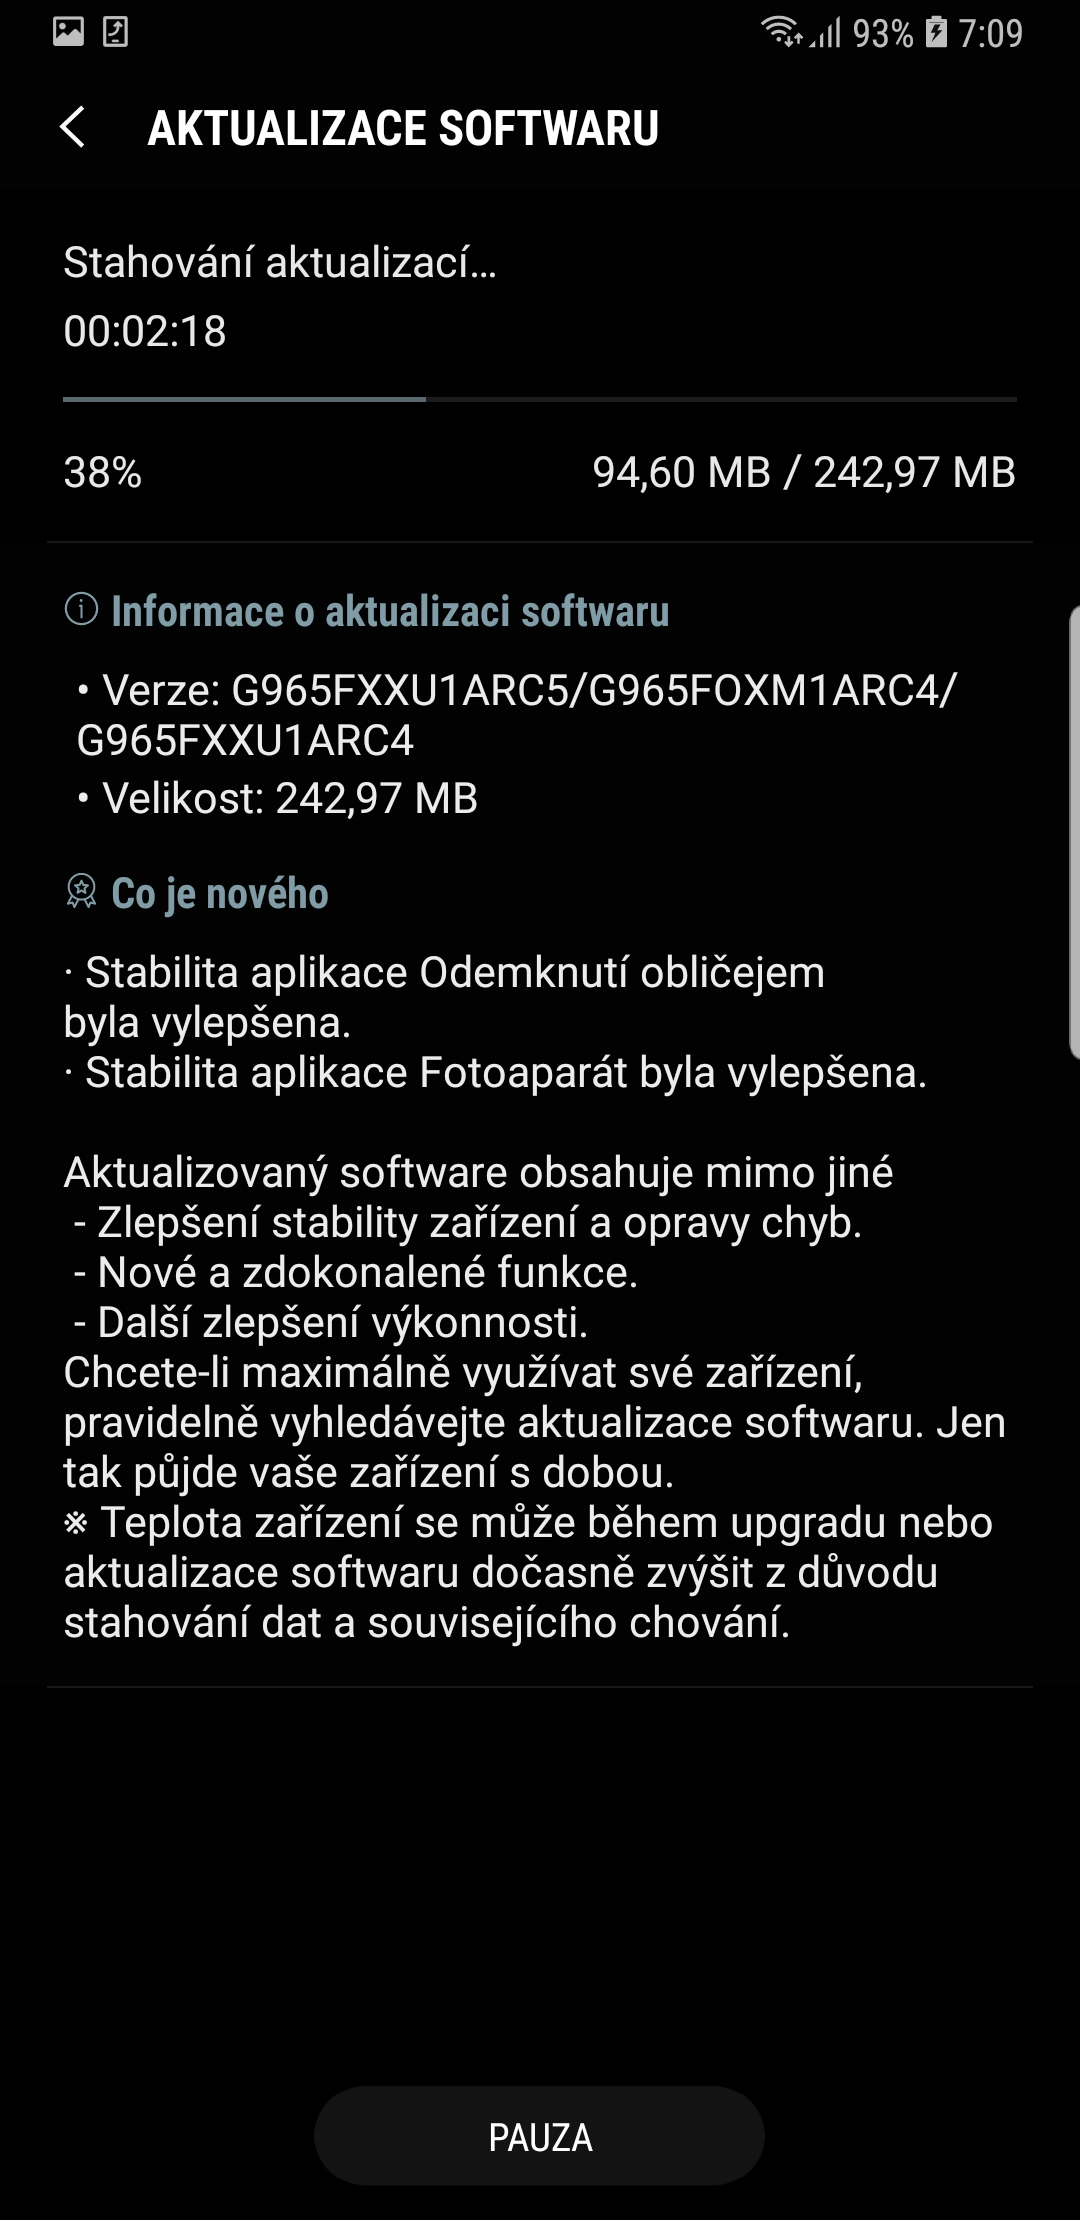 Screenshot_20180314-070949_Software update.jpg